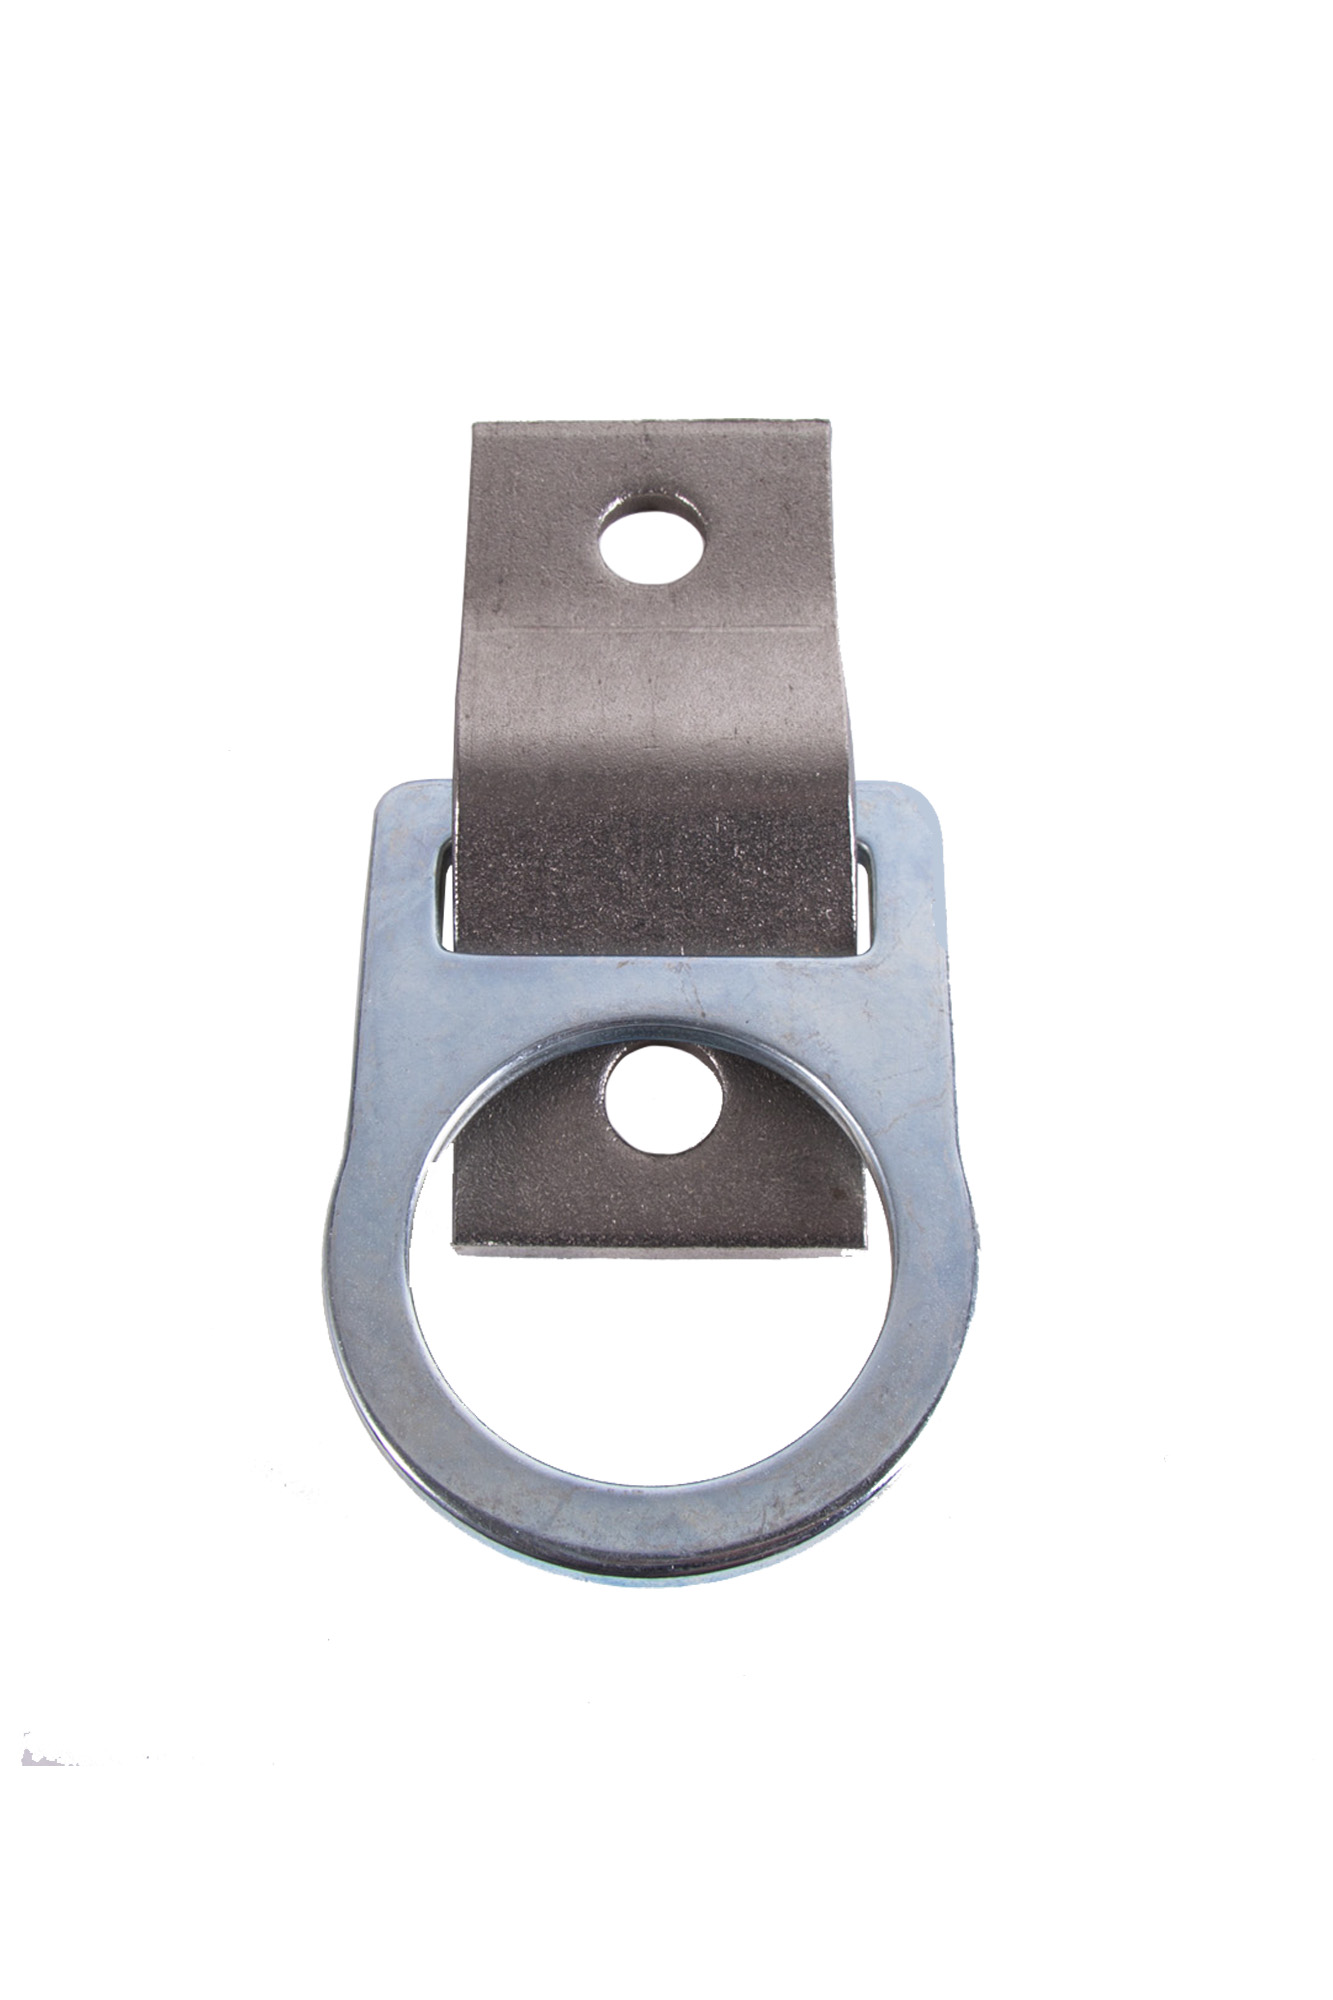 GUARDIAN FALL PROTECTION 00250 Standing Seam Roof Clamp, Powder-Coated/Galvanized Steel, Yellow, For SRLs Reusable